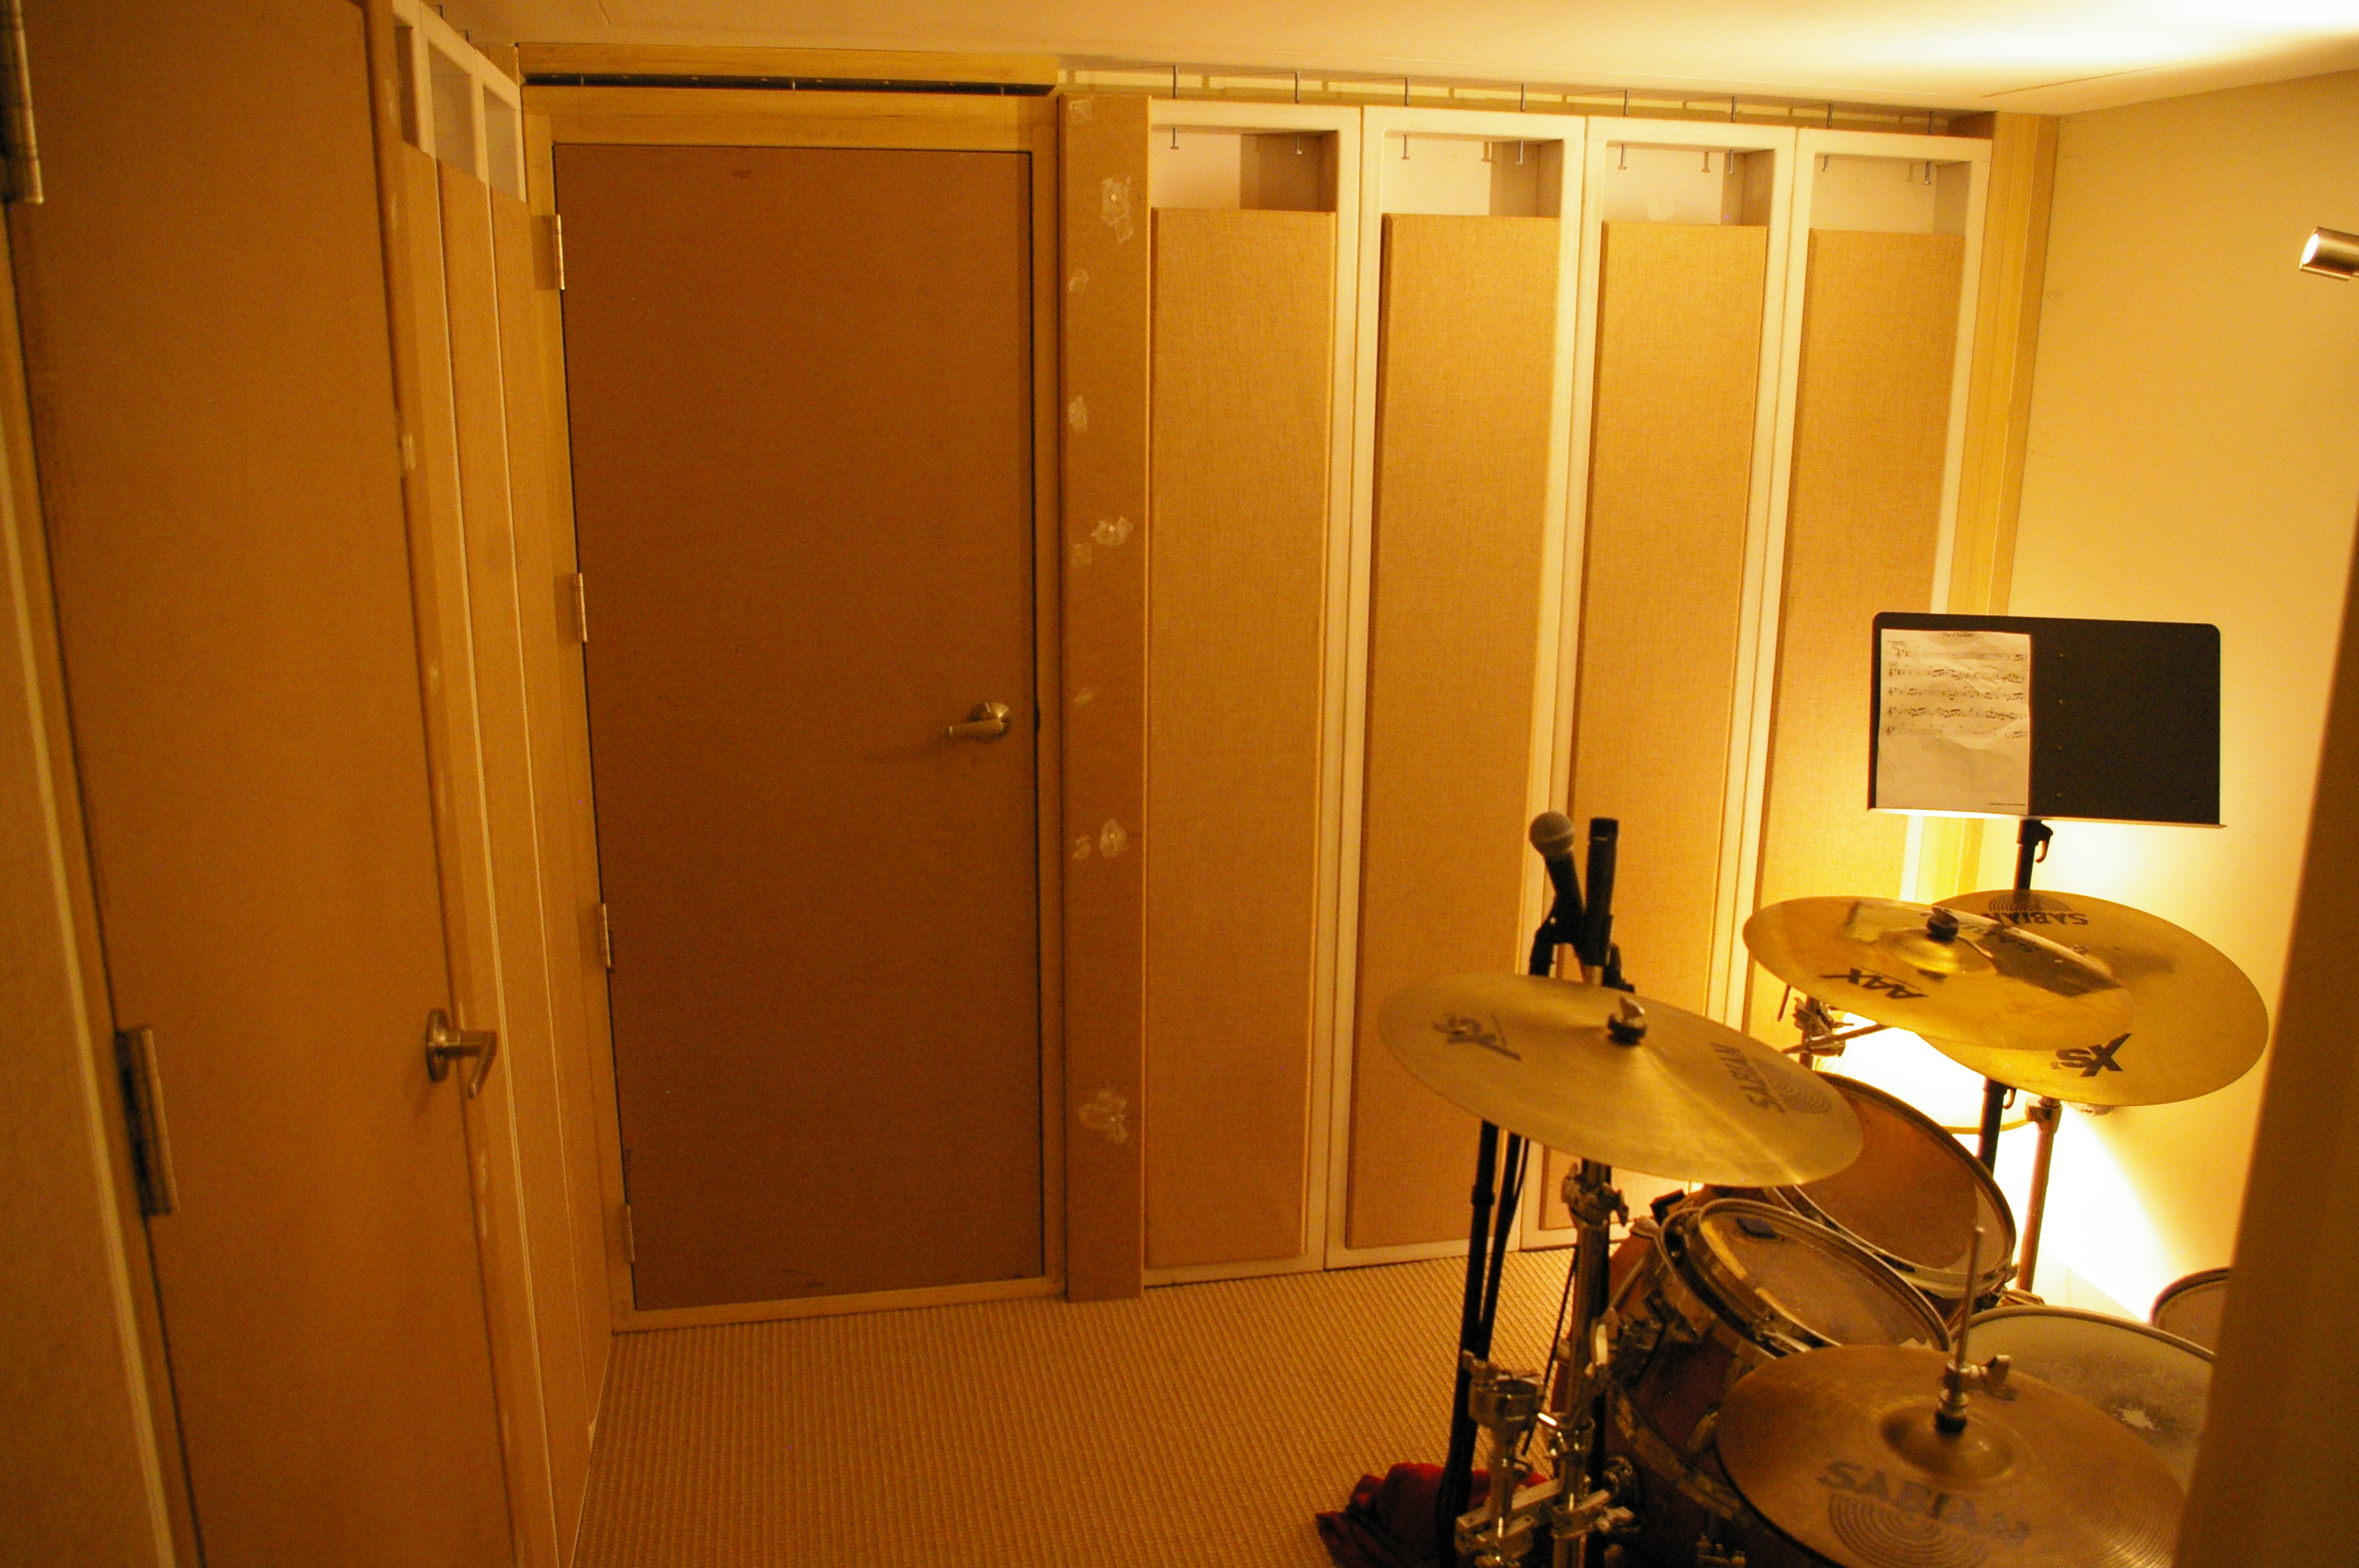 Removable Drum Isolation Room